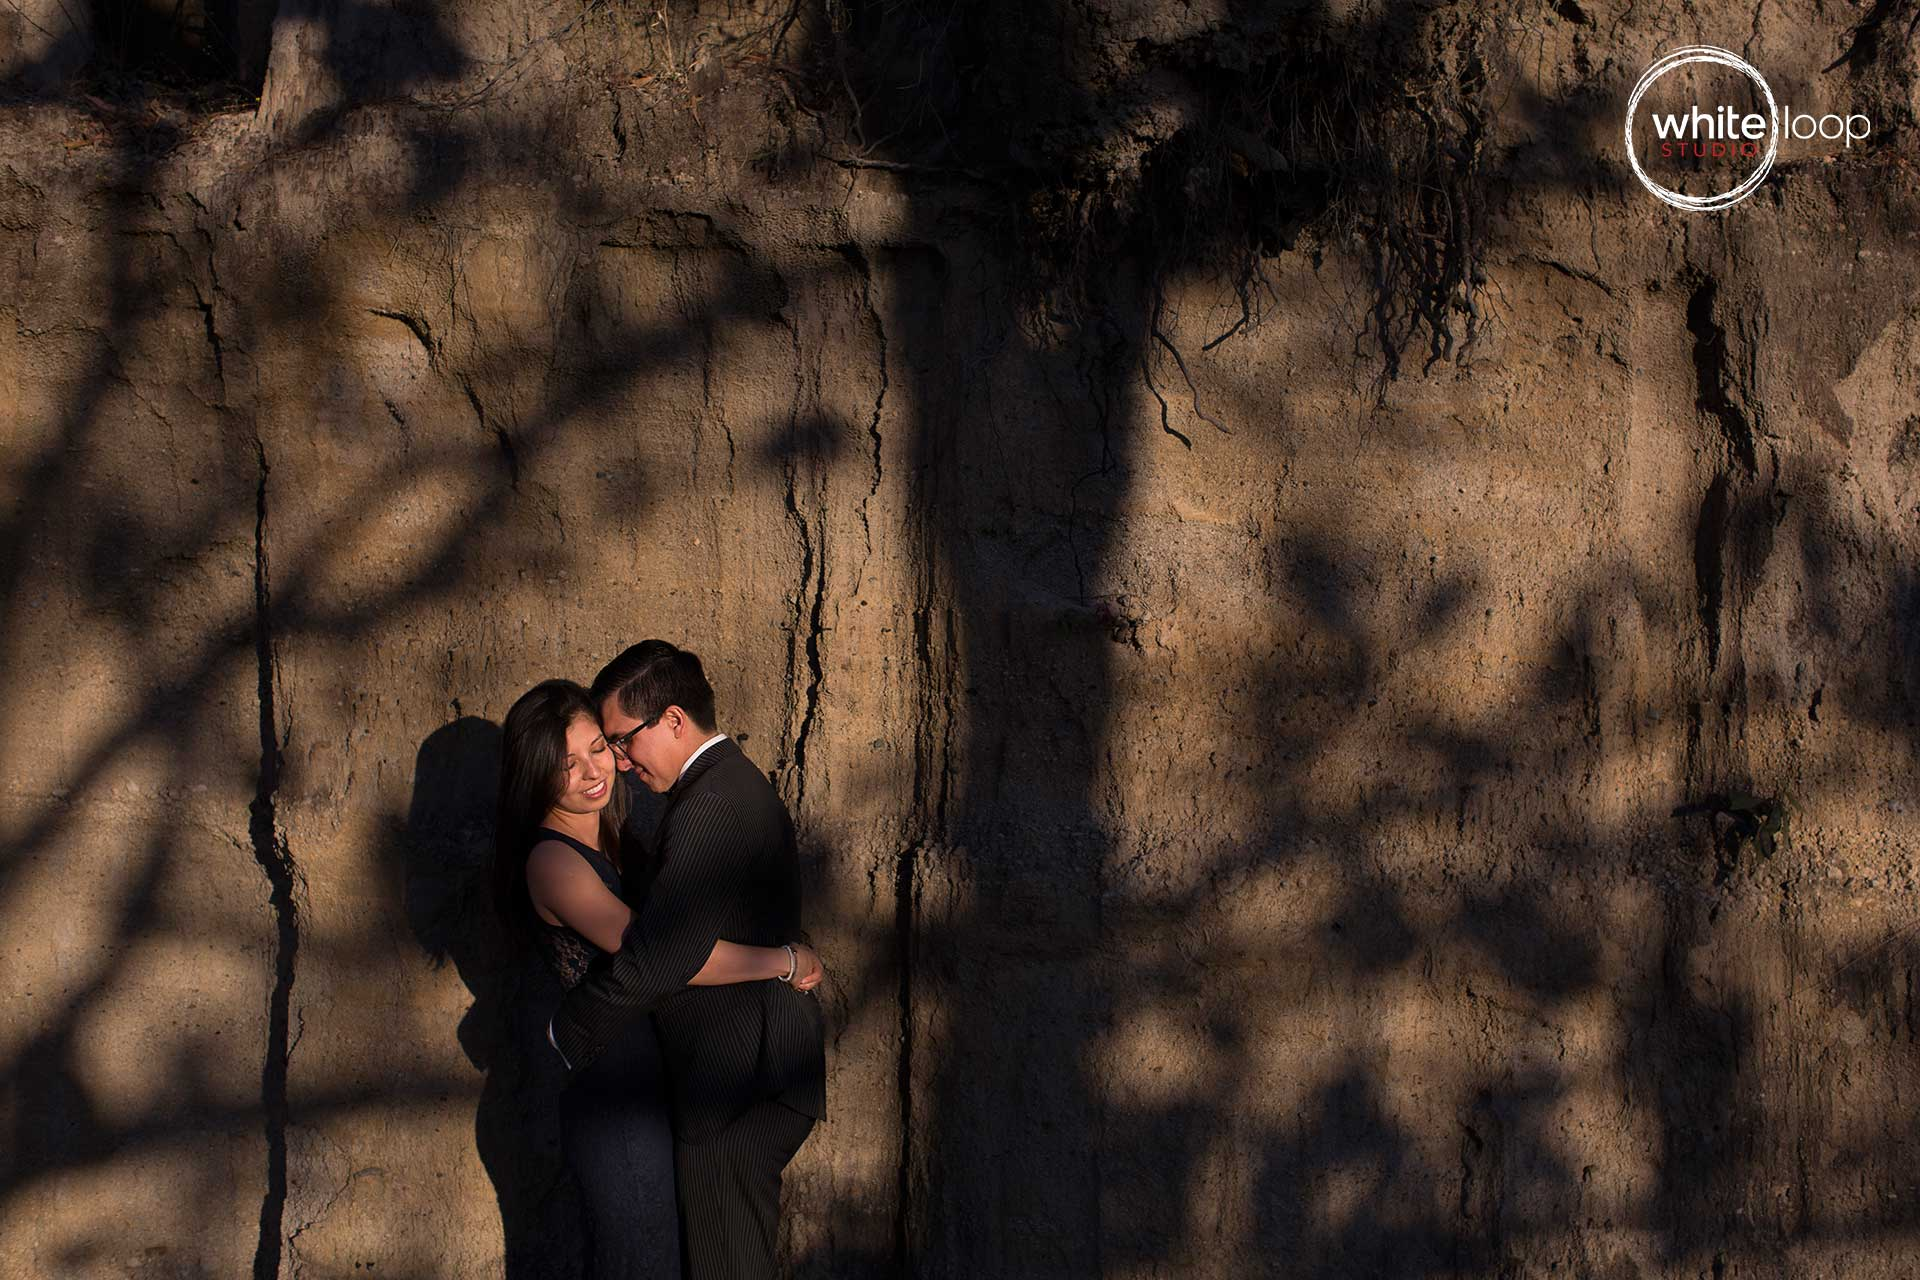 The bride and groom embraced with illuminations of the sunlight through the woods.